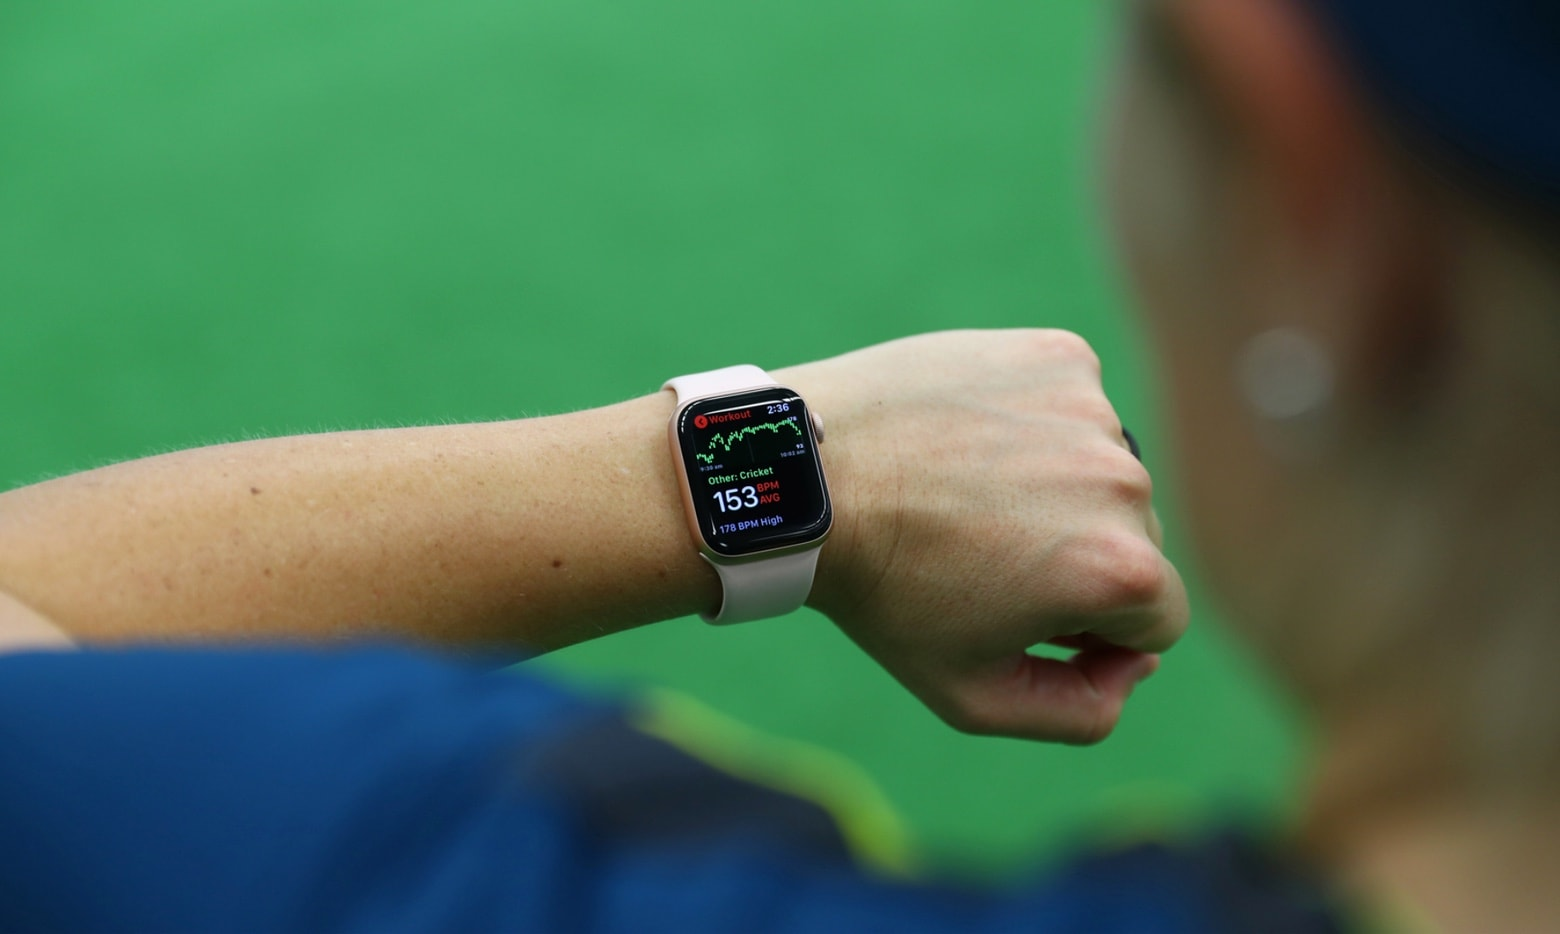 Apple Watch app to monitor athletic performance